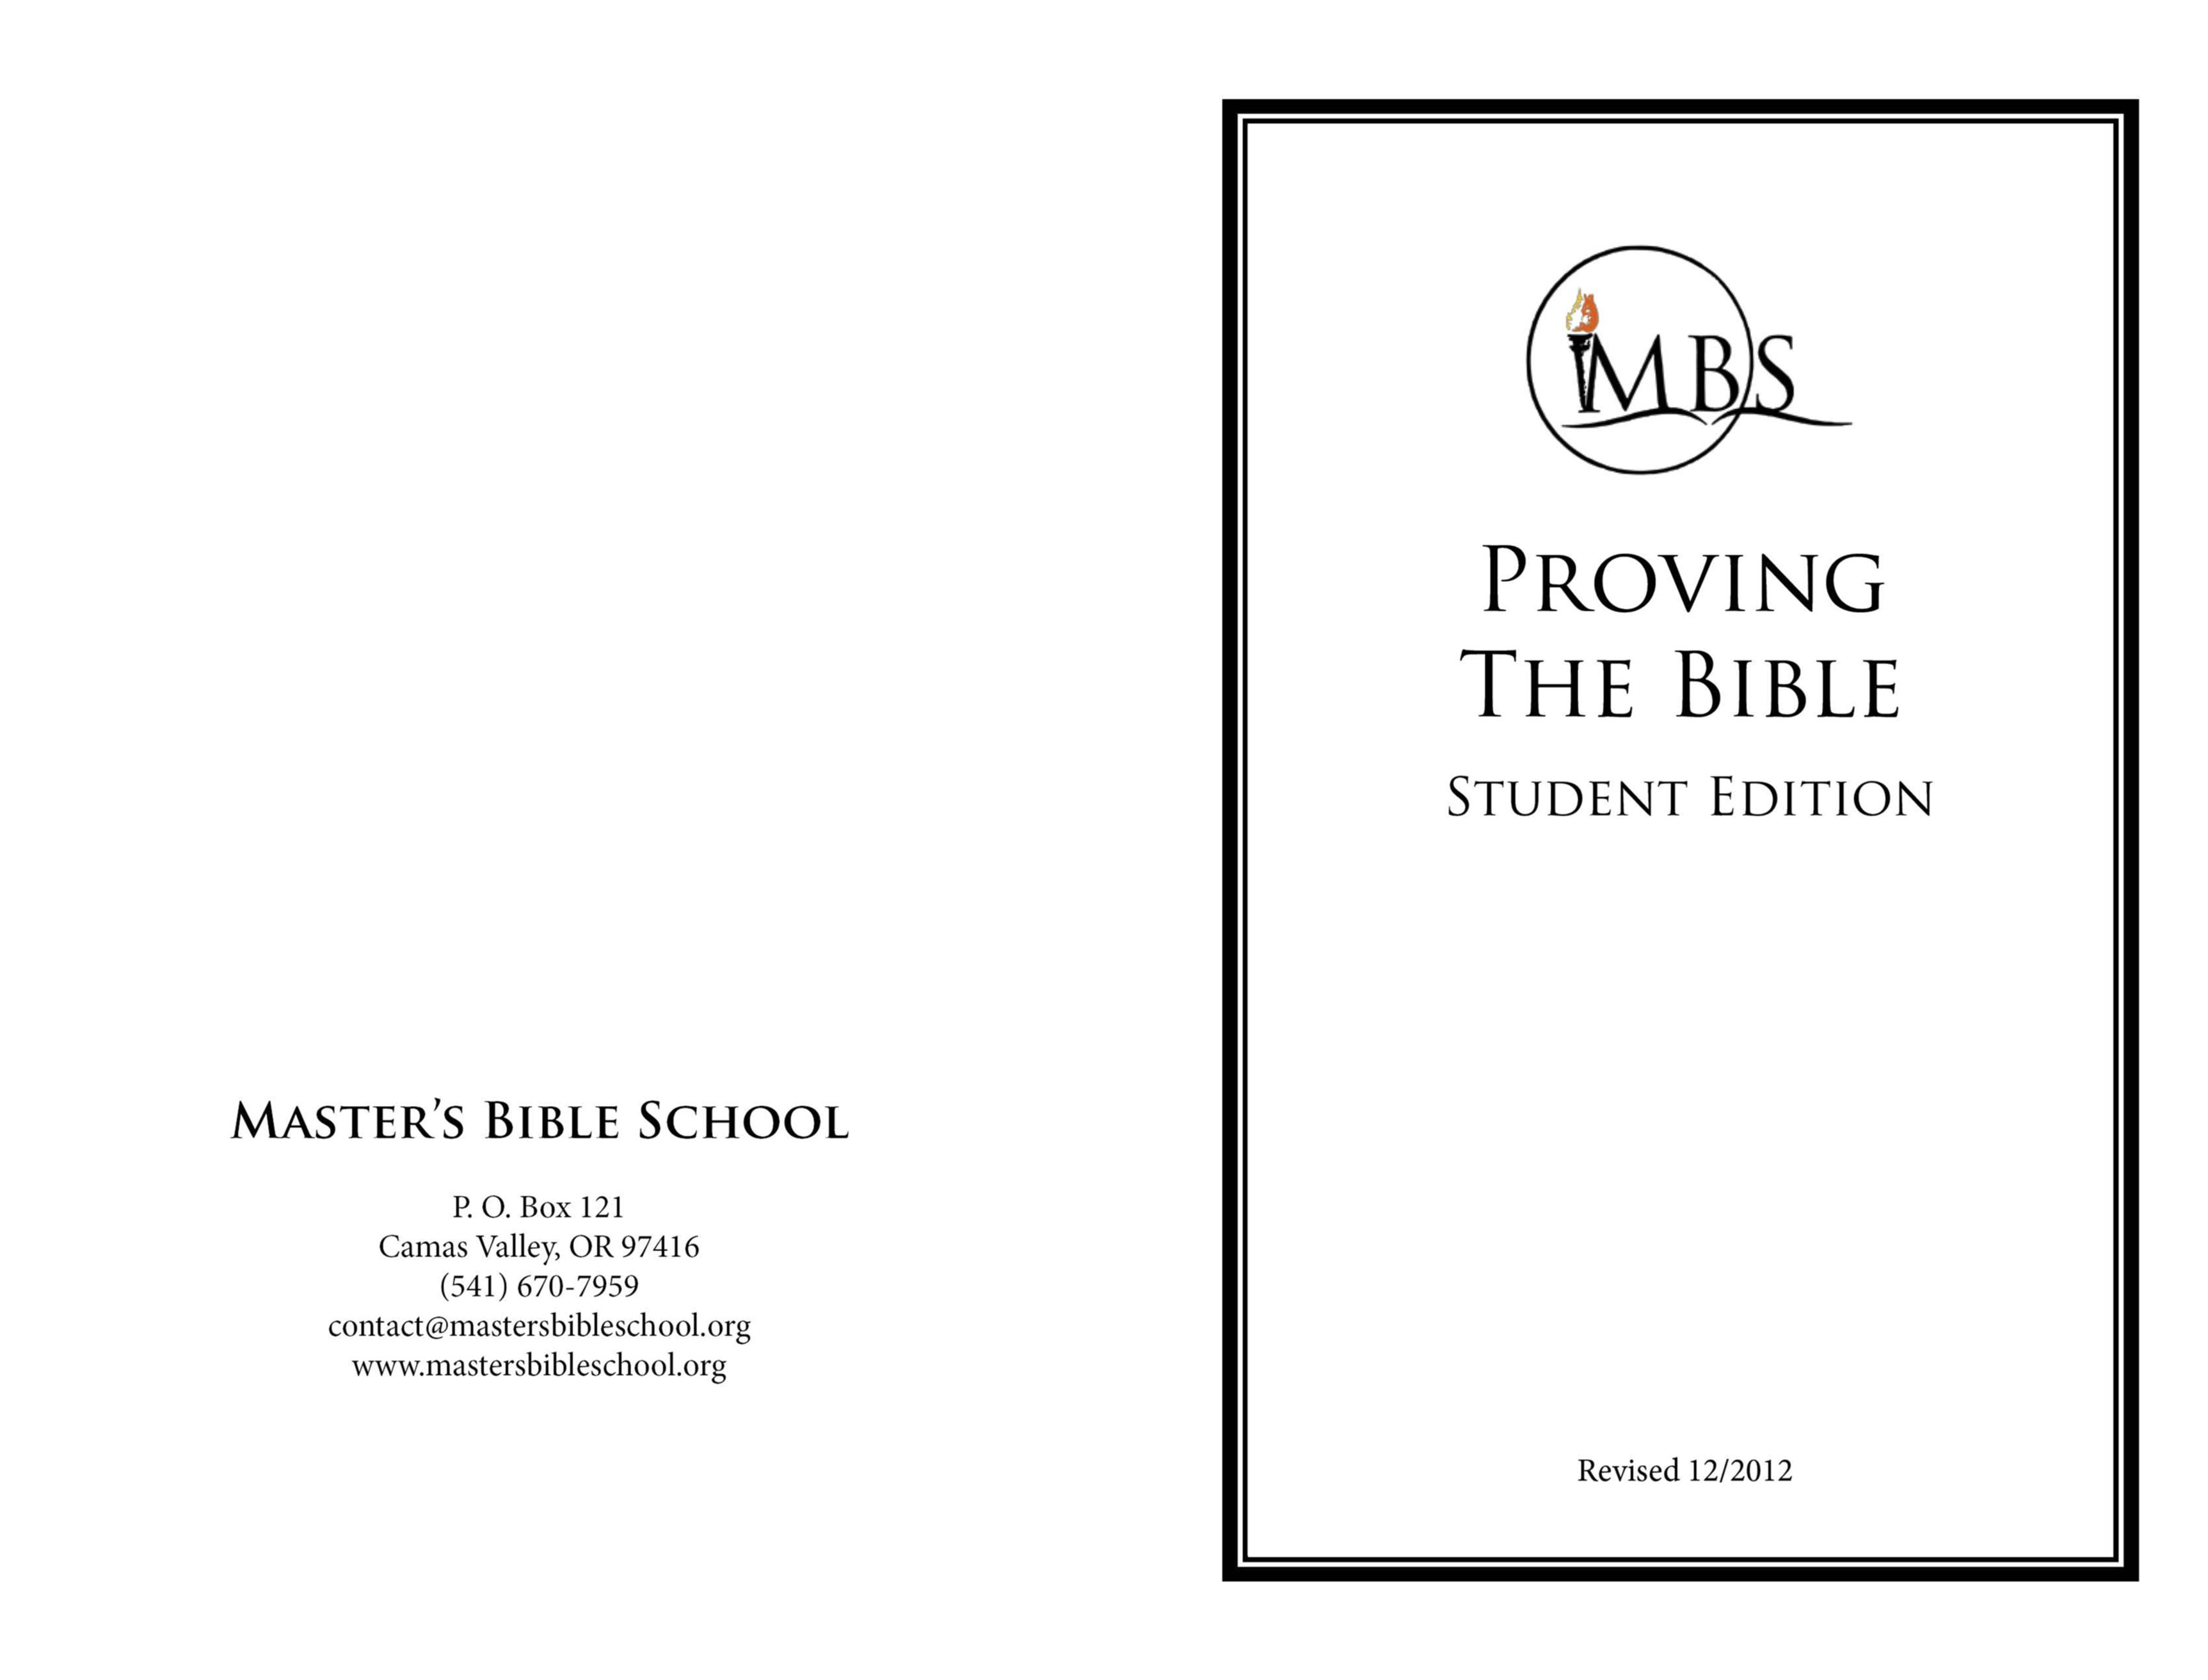 Proving the Bible - Student Edition cover image